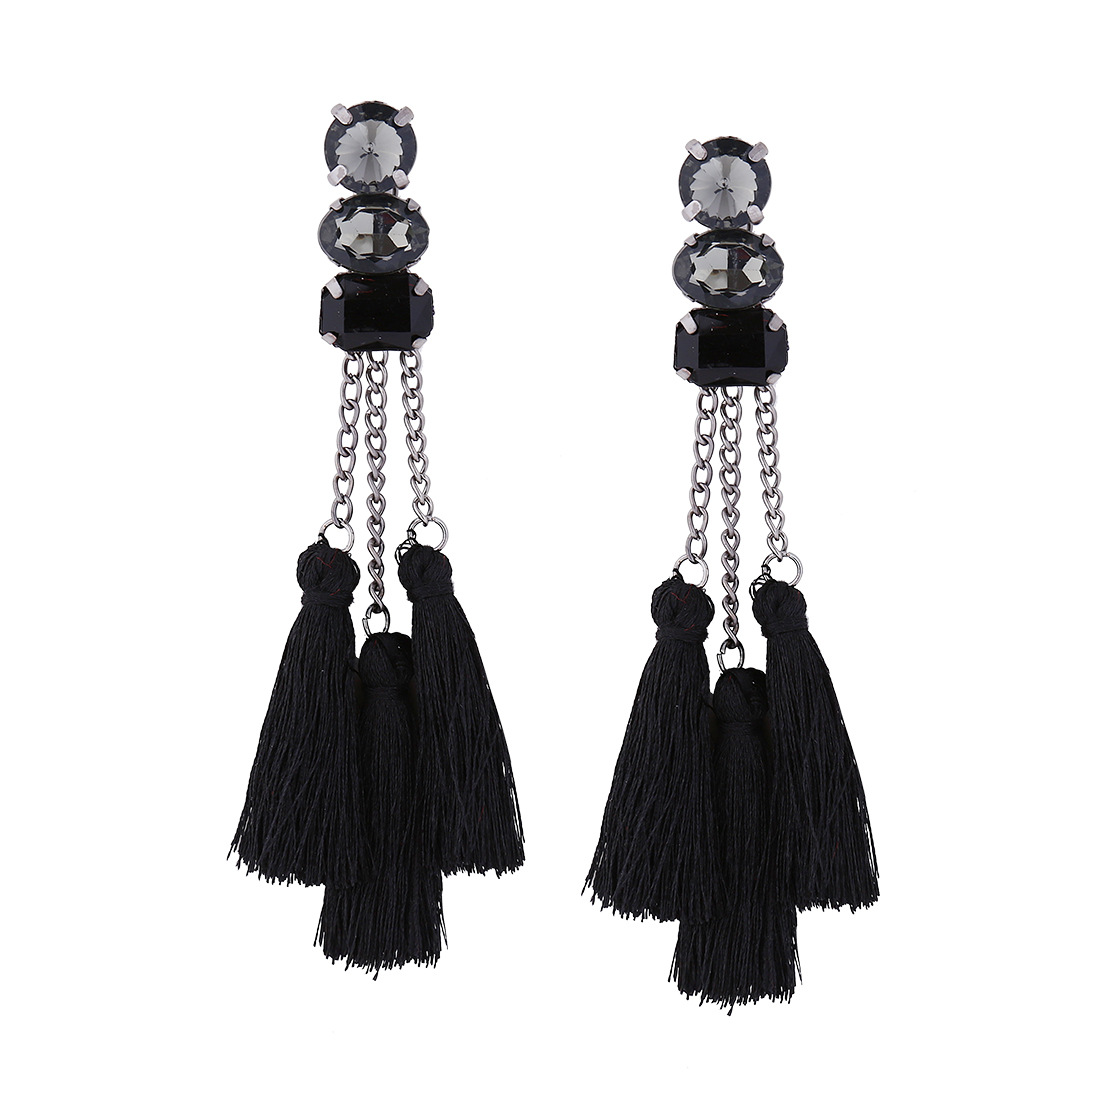 earrings in black from stud jewelry for tengyi new accessories item stainless top design steel party crystal man rock quality